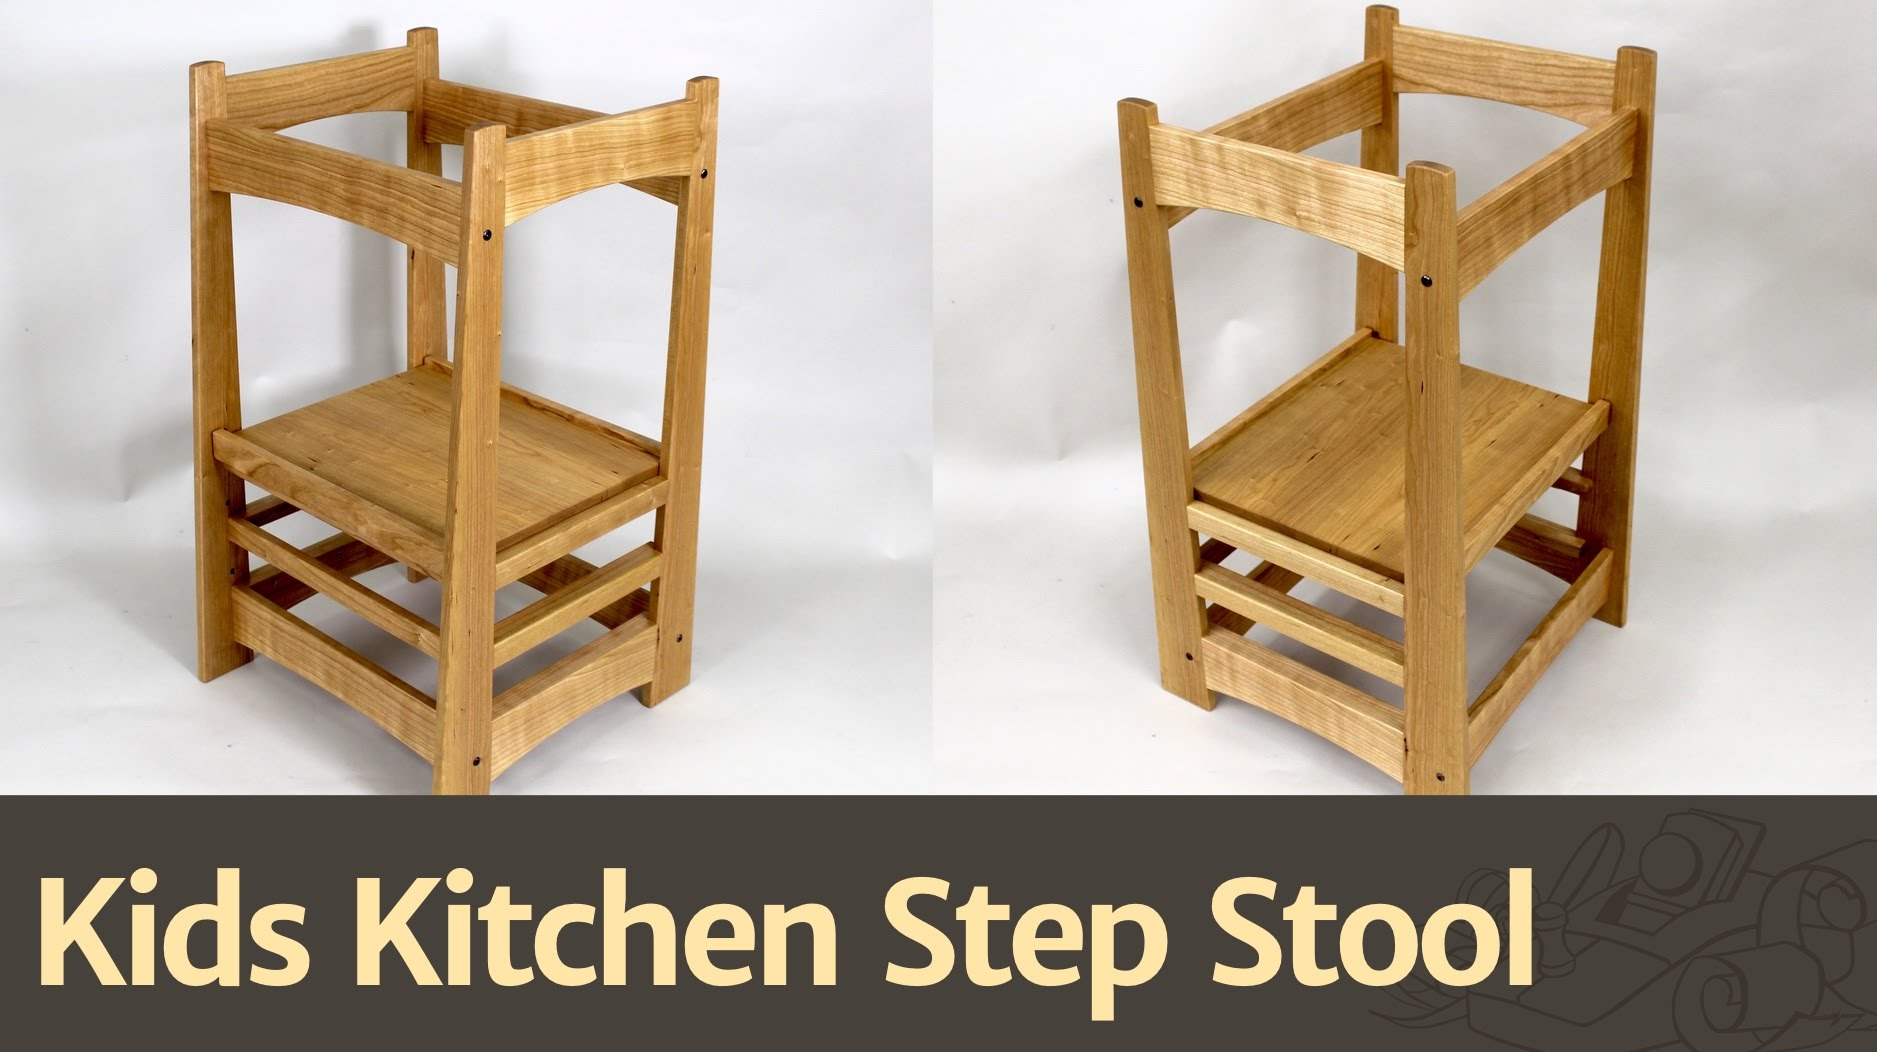 236 Kids Kitchen Step Stool